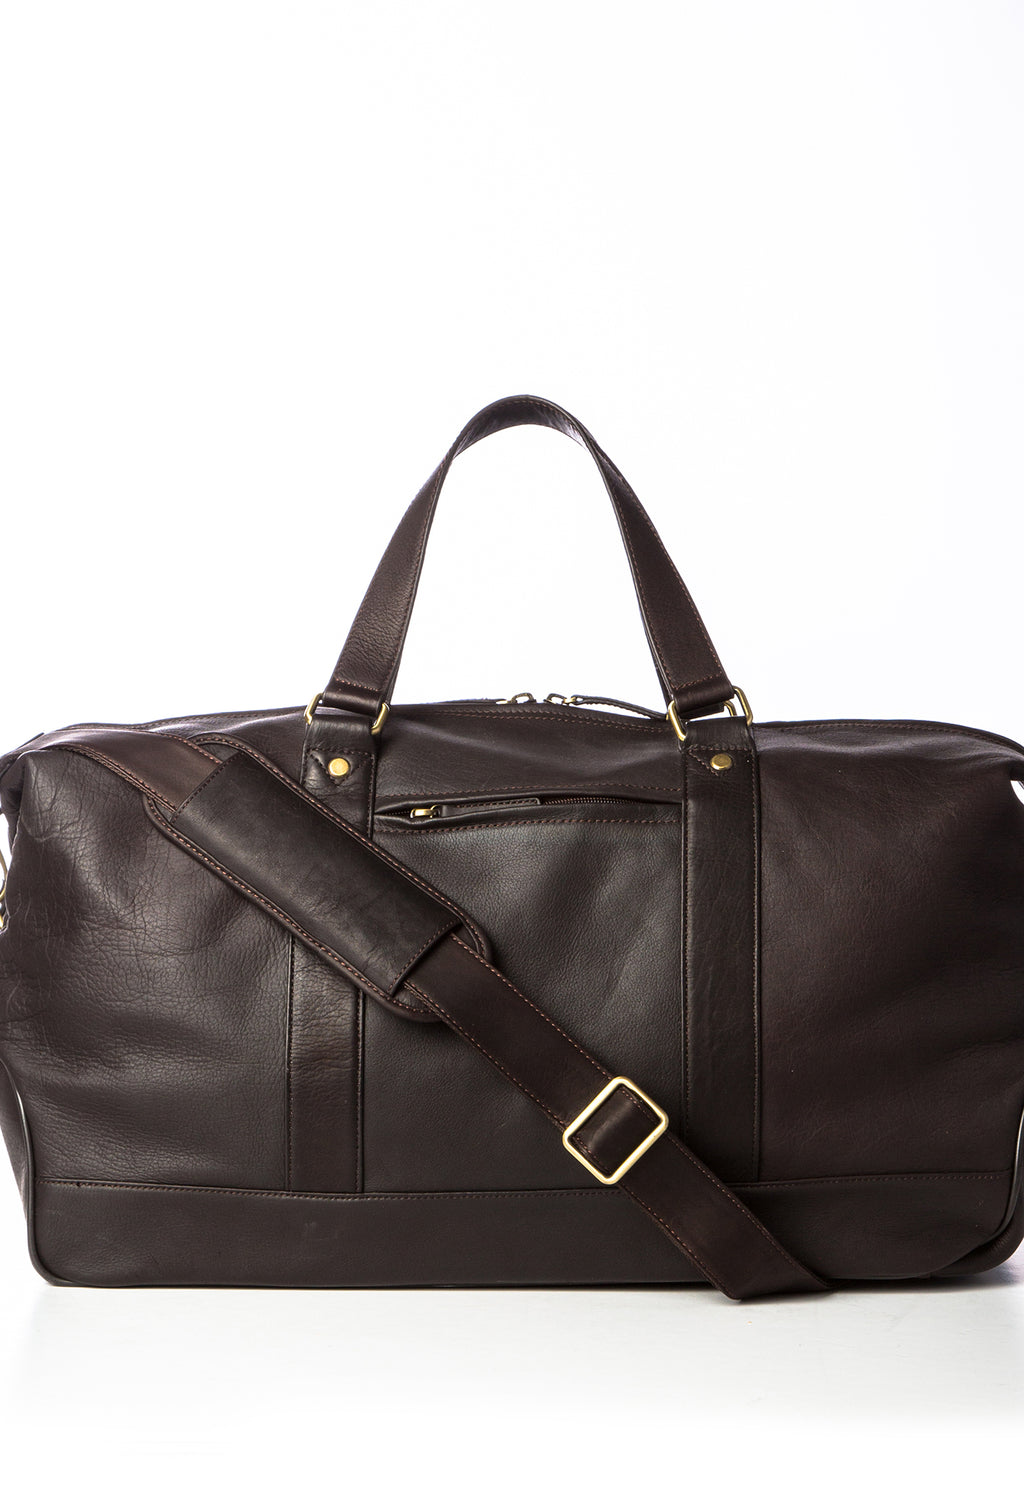 CIPRIANO - Rugged Leather Duffel - Brown